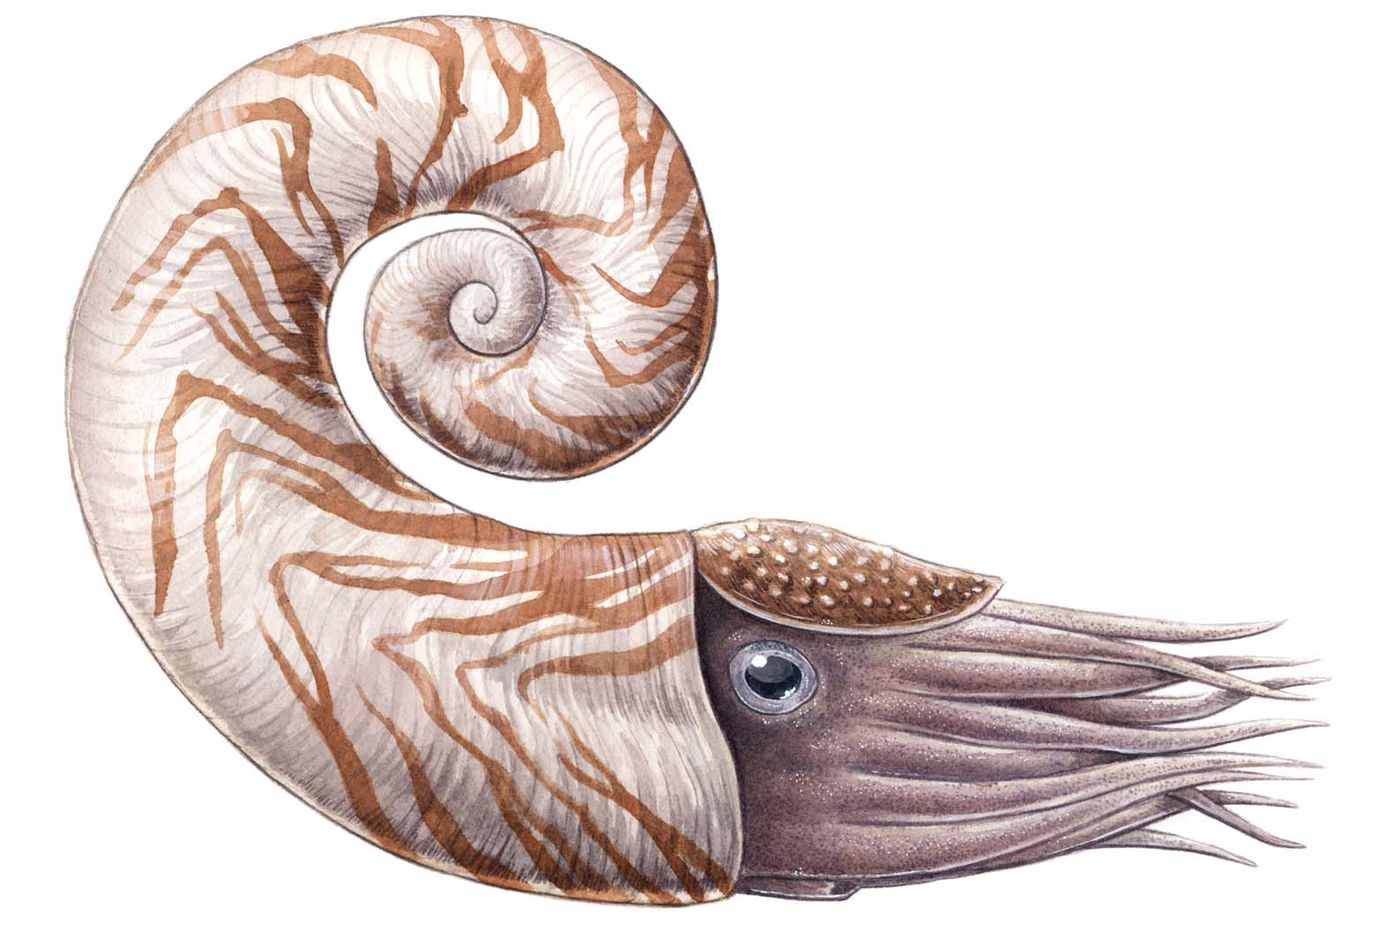 Illustration of a nautilus-like animal with an orange-striped shell and tentacles